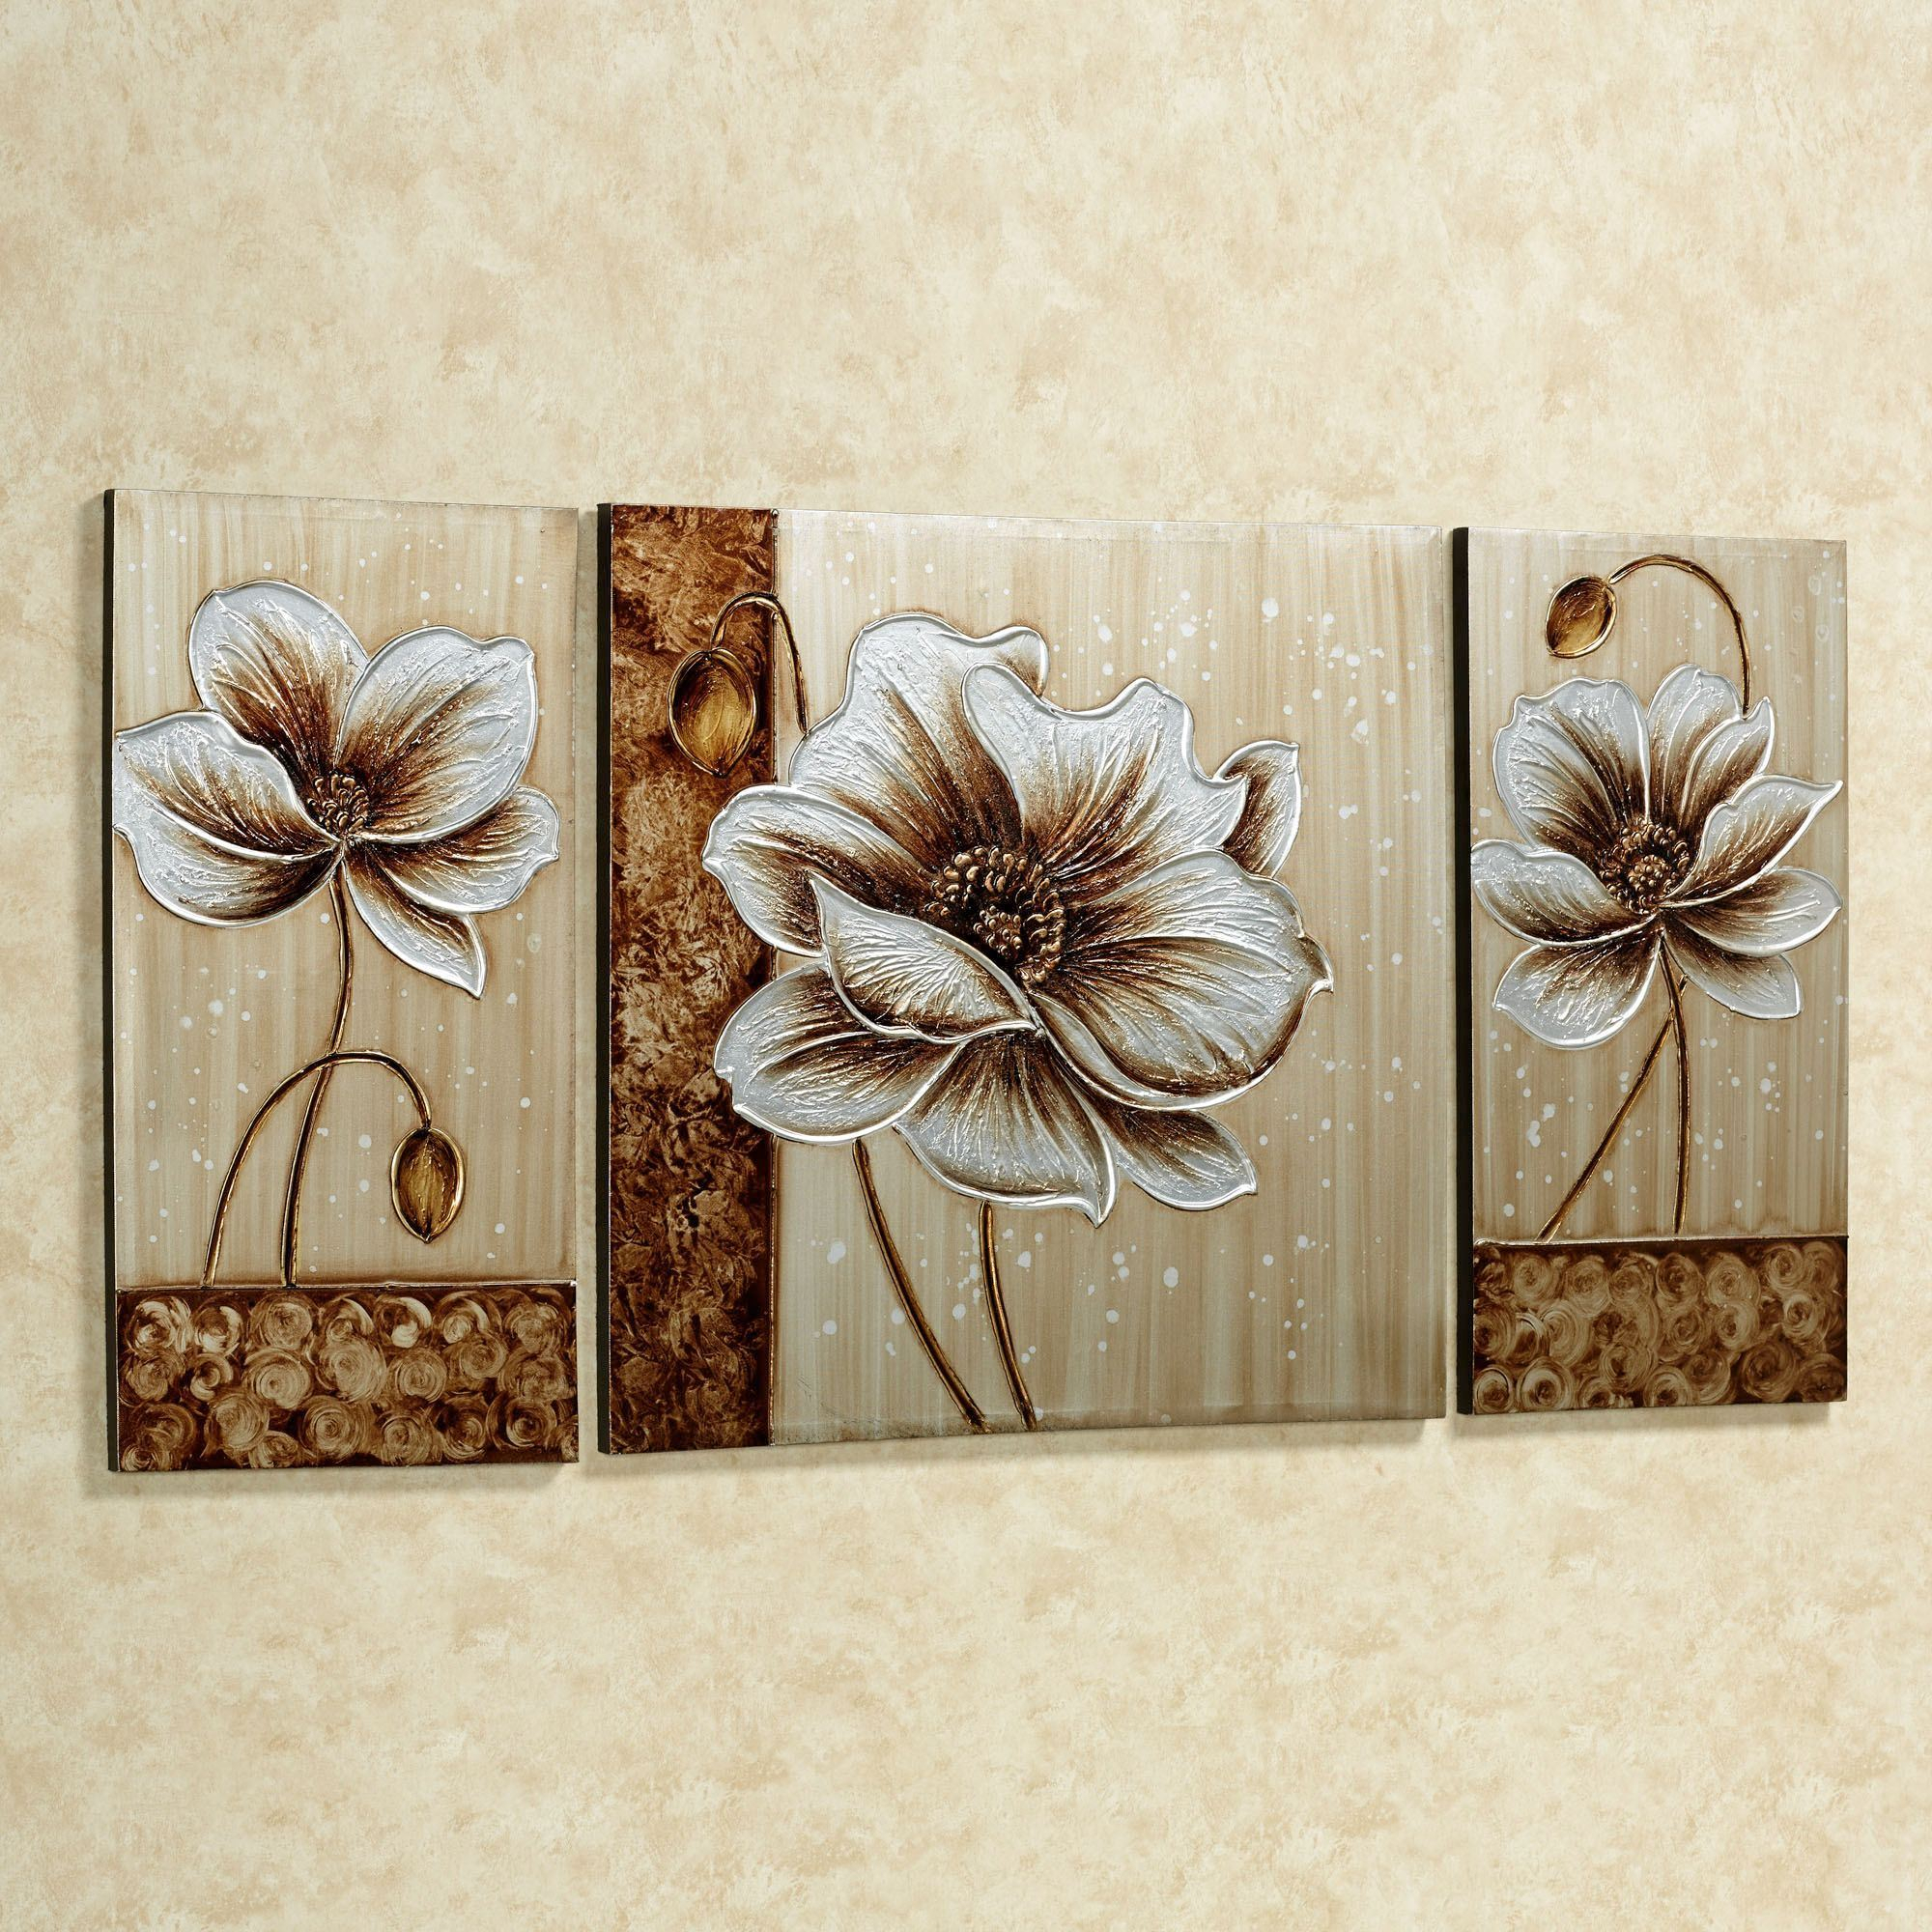 Subtle Elegance Floral Canvas Wall Art Set With 4 Piece Metal Wall Plaque Decor Sets (View 15 of 30)